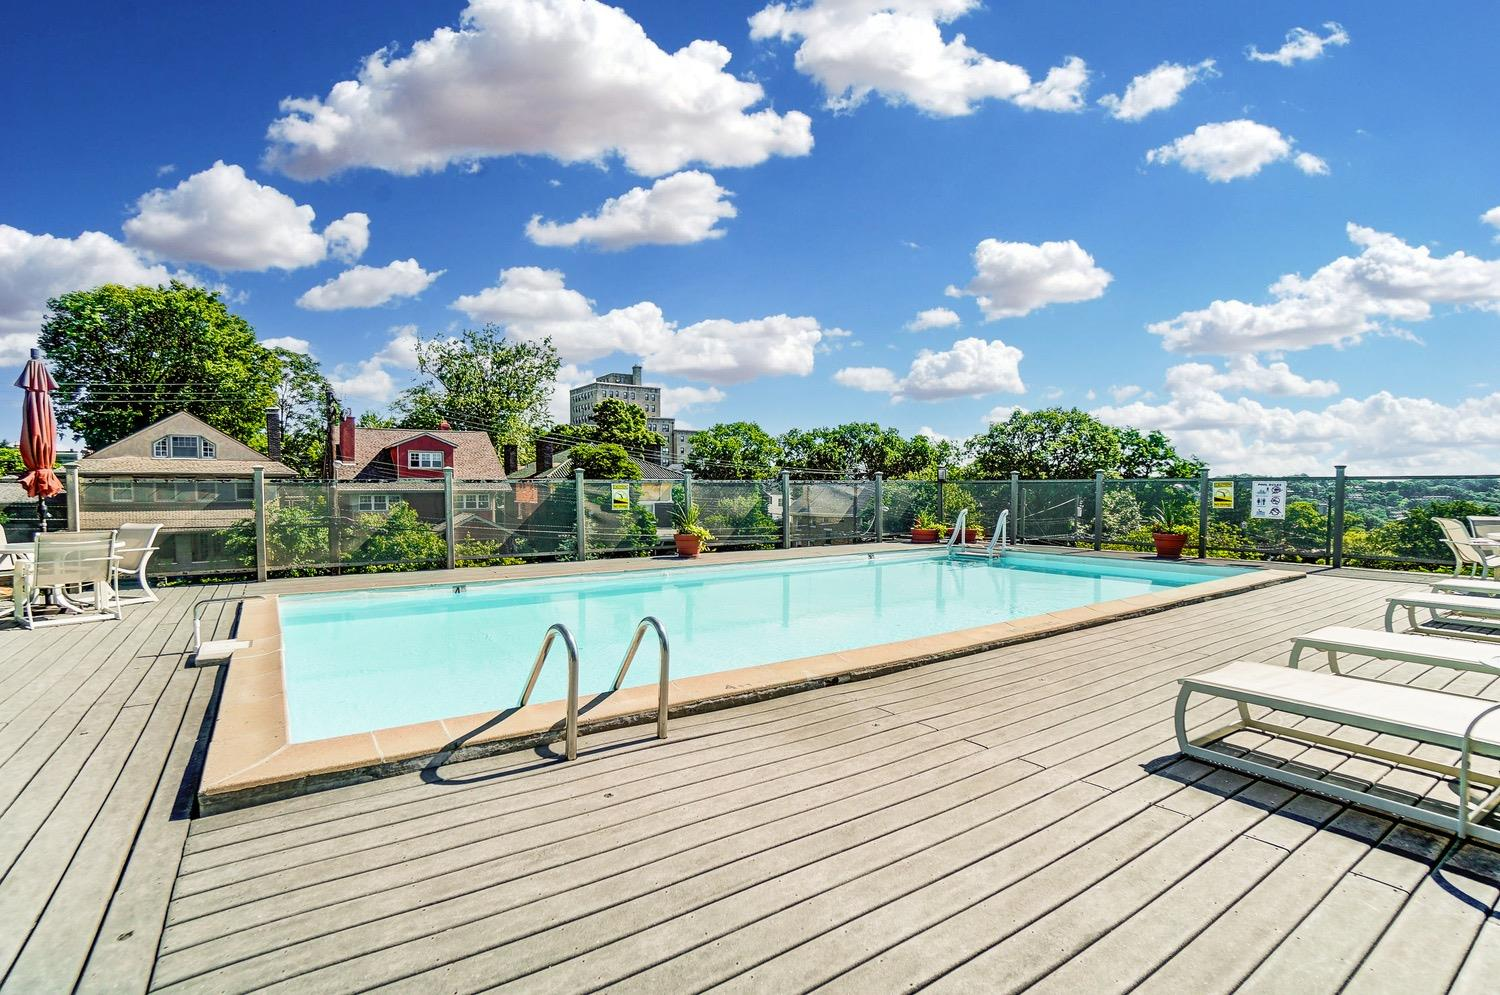 The elevated Husman House outdoor pool with river views from the deck.